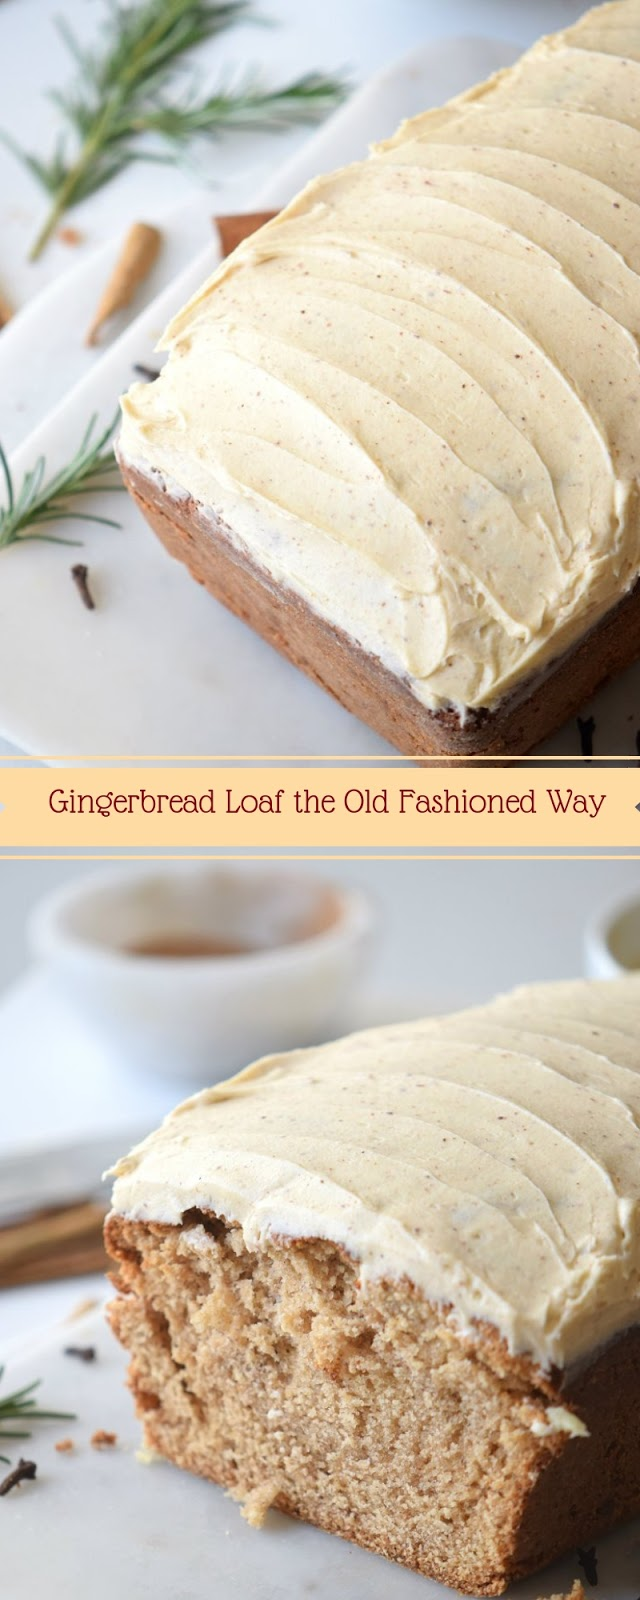 Gingerbread Loaf the Old Fashioned Way